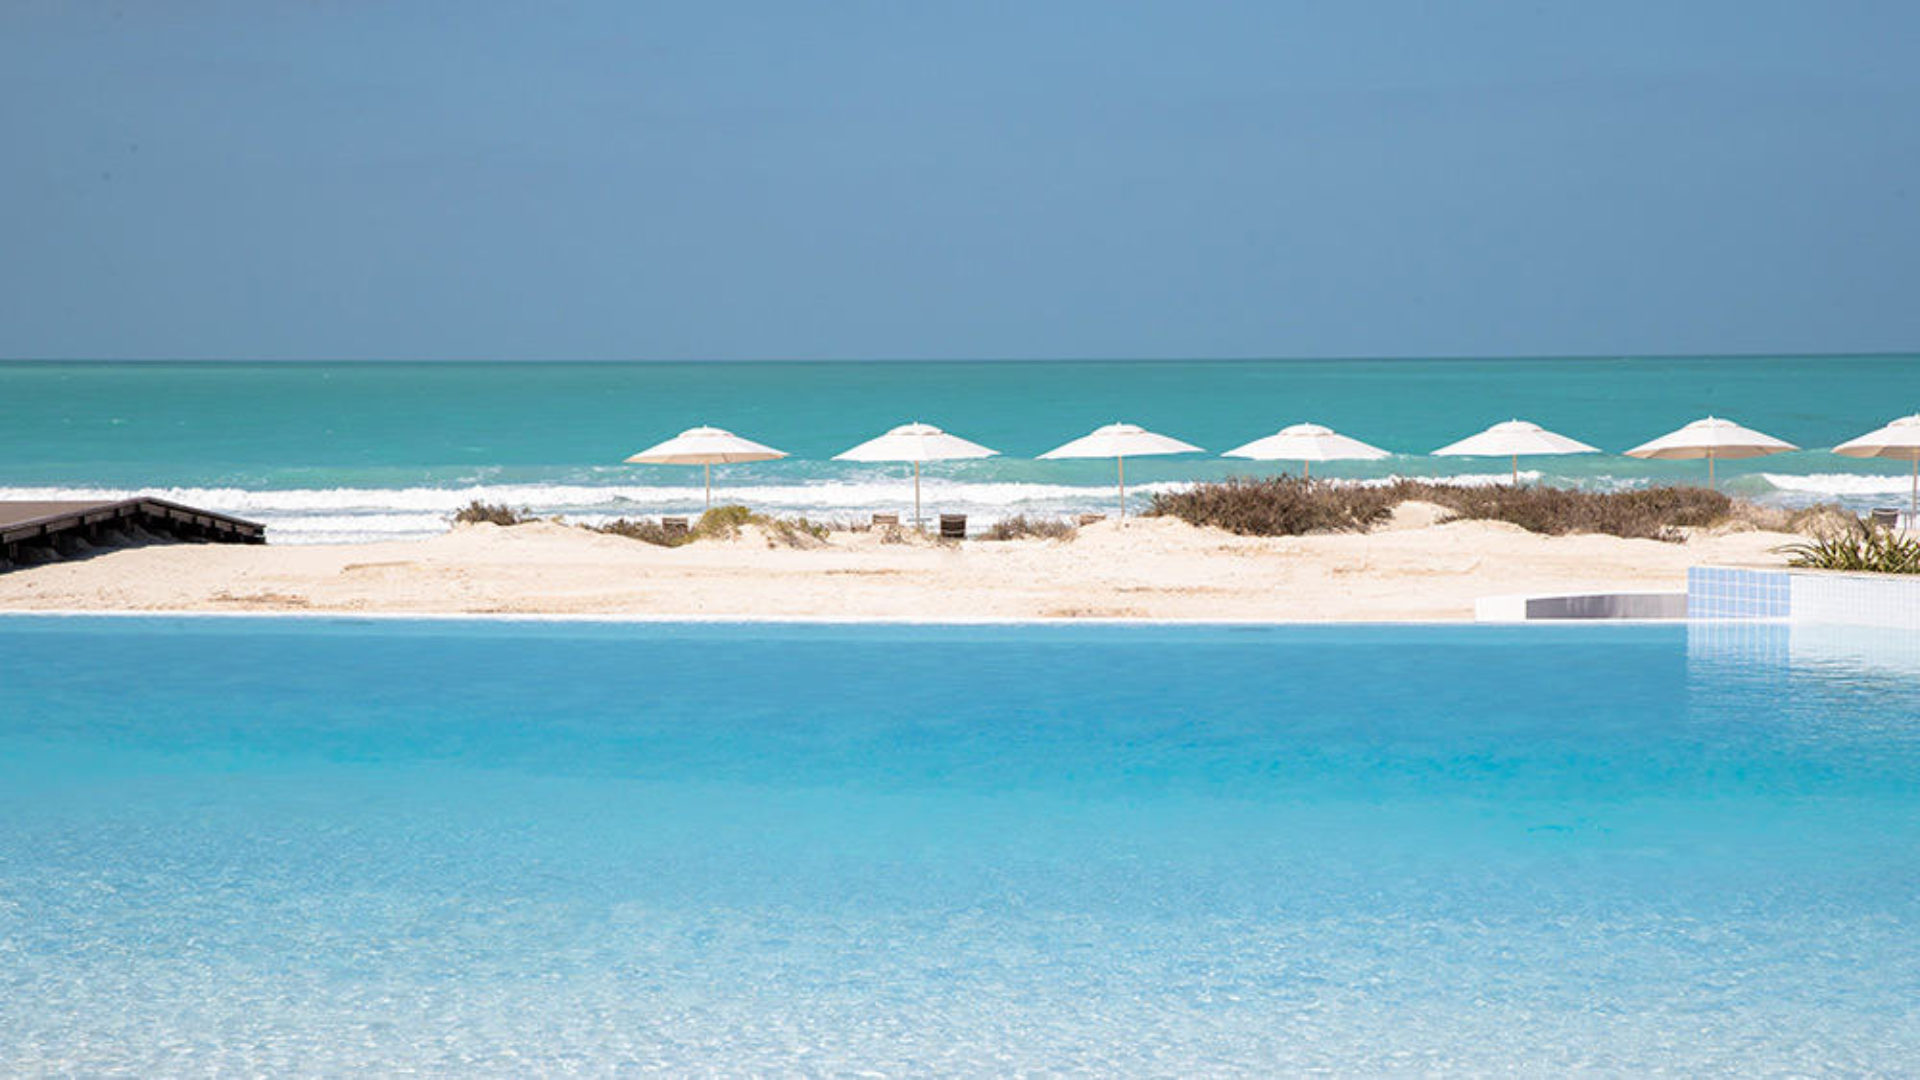 Infinity pool and beach at Jumeirah at Saadiyat Island